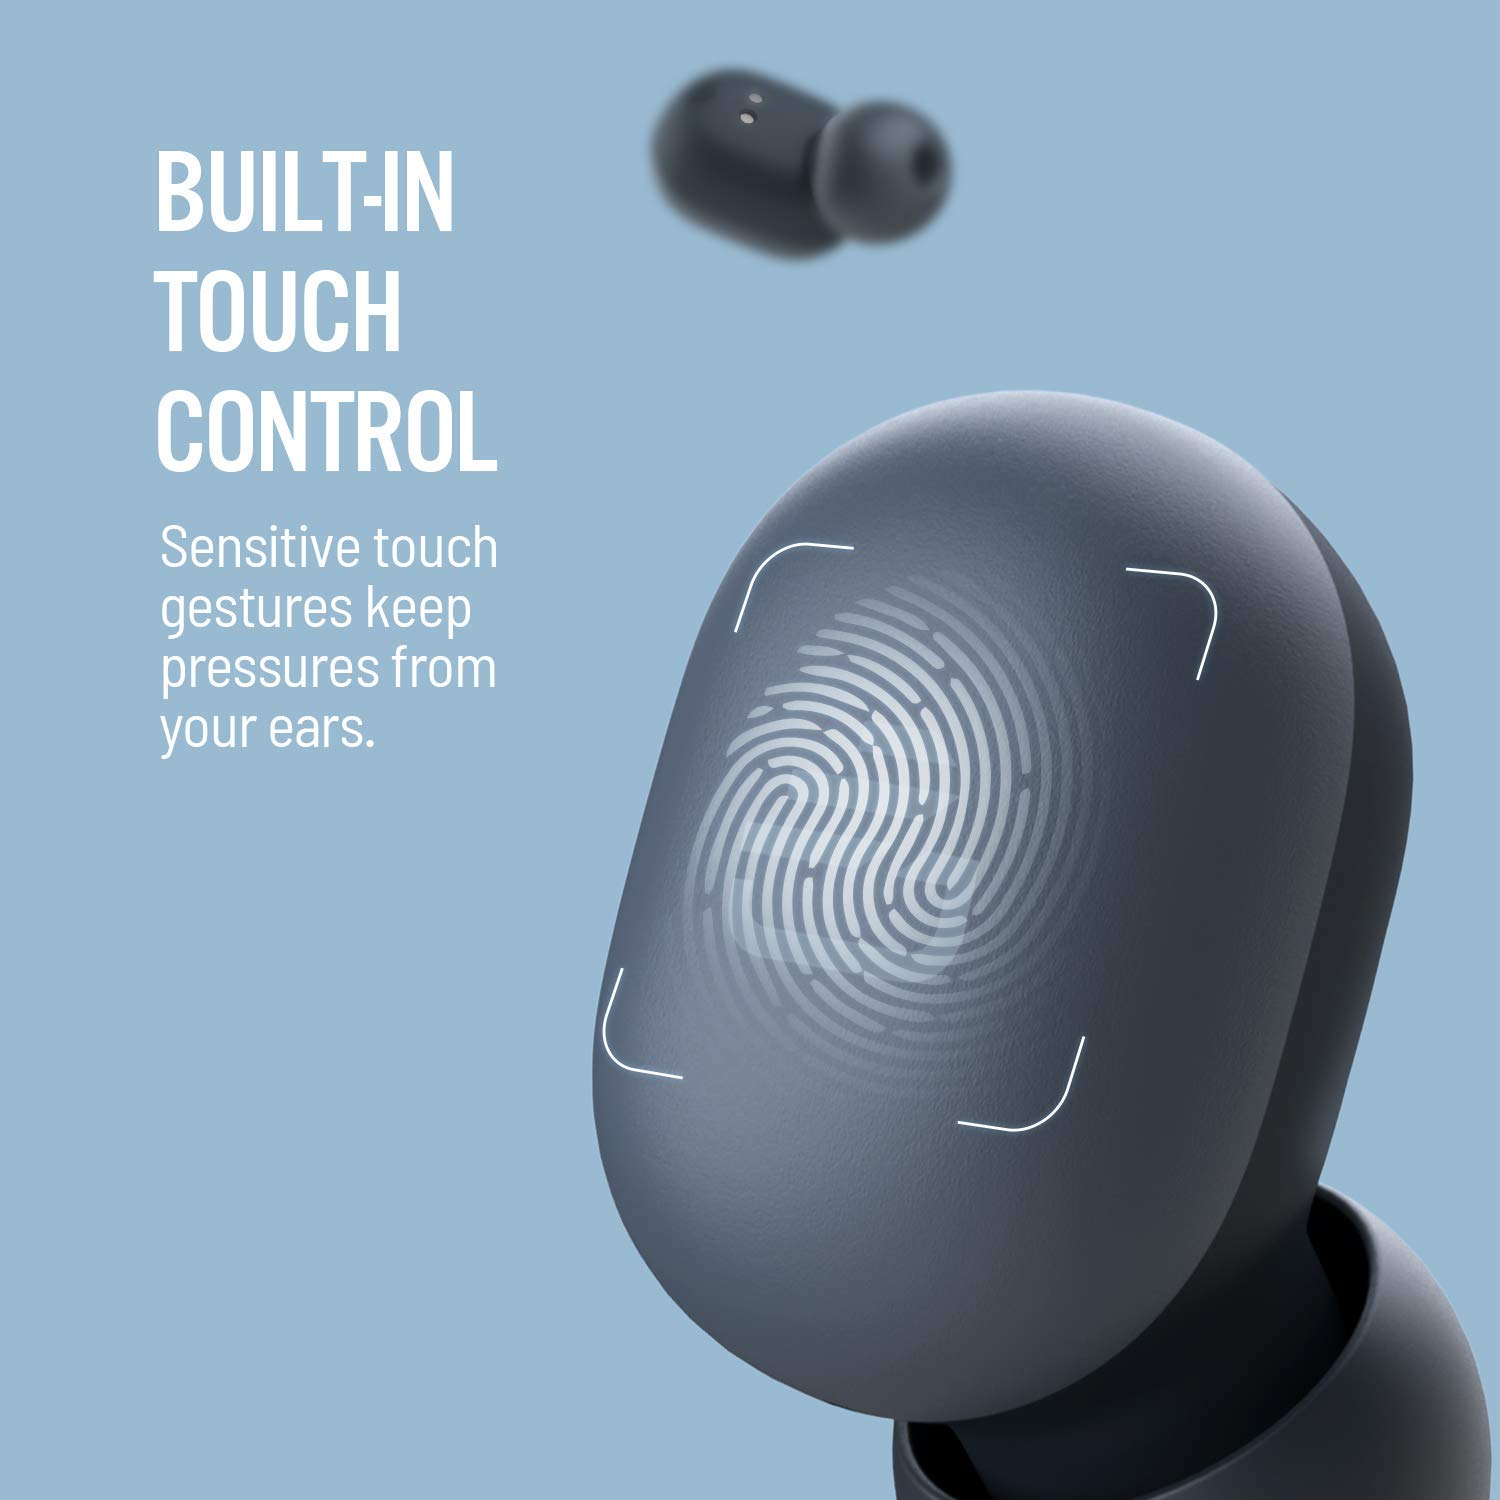 [US Direct] Original DUDIOS True Wireless Earbuds, Free Mini Earphone with 7.2mm Enhanced Drivers(Smart Touch,Easy-Pair,Built-in Mic,15 Hours Playtime) Black